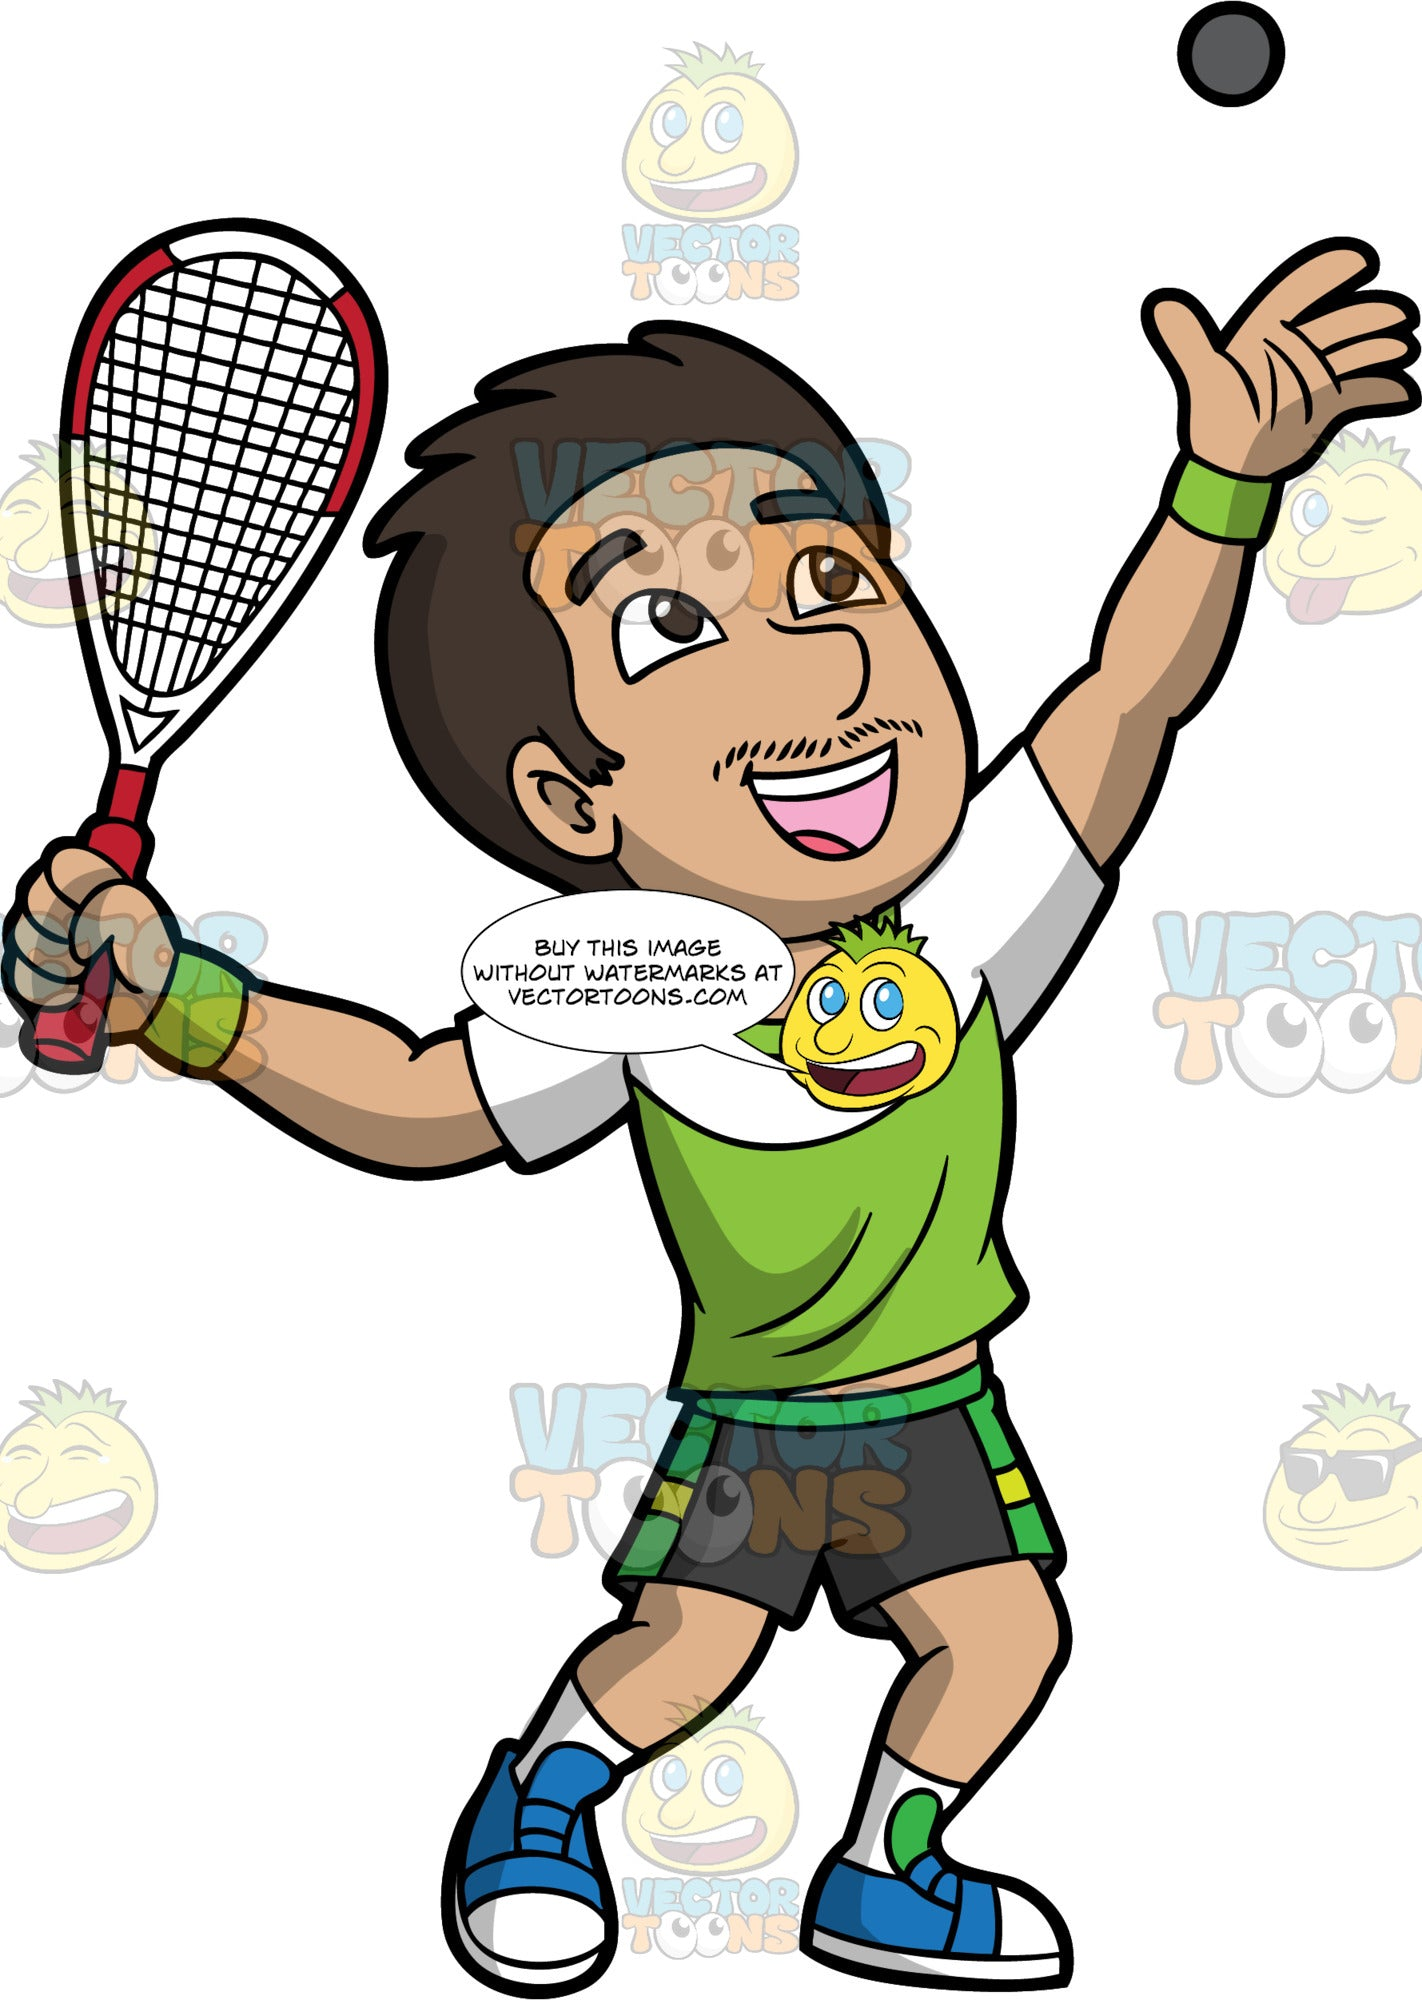 A Man Serving A Squash Ball. A man with dark brown hair and eyes, wearing dark gray with green shorts, a green and white shirt, white socks and blue shoes, throws a squash ball up in the air with one hand, while holding a racquet up with the other in preparation for serving the ball